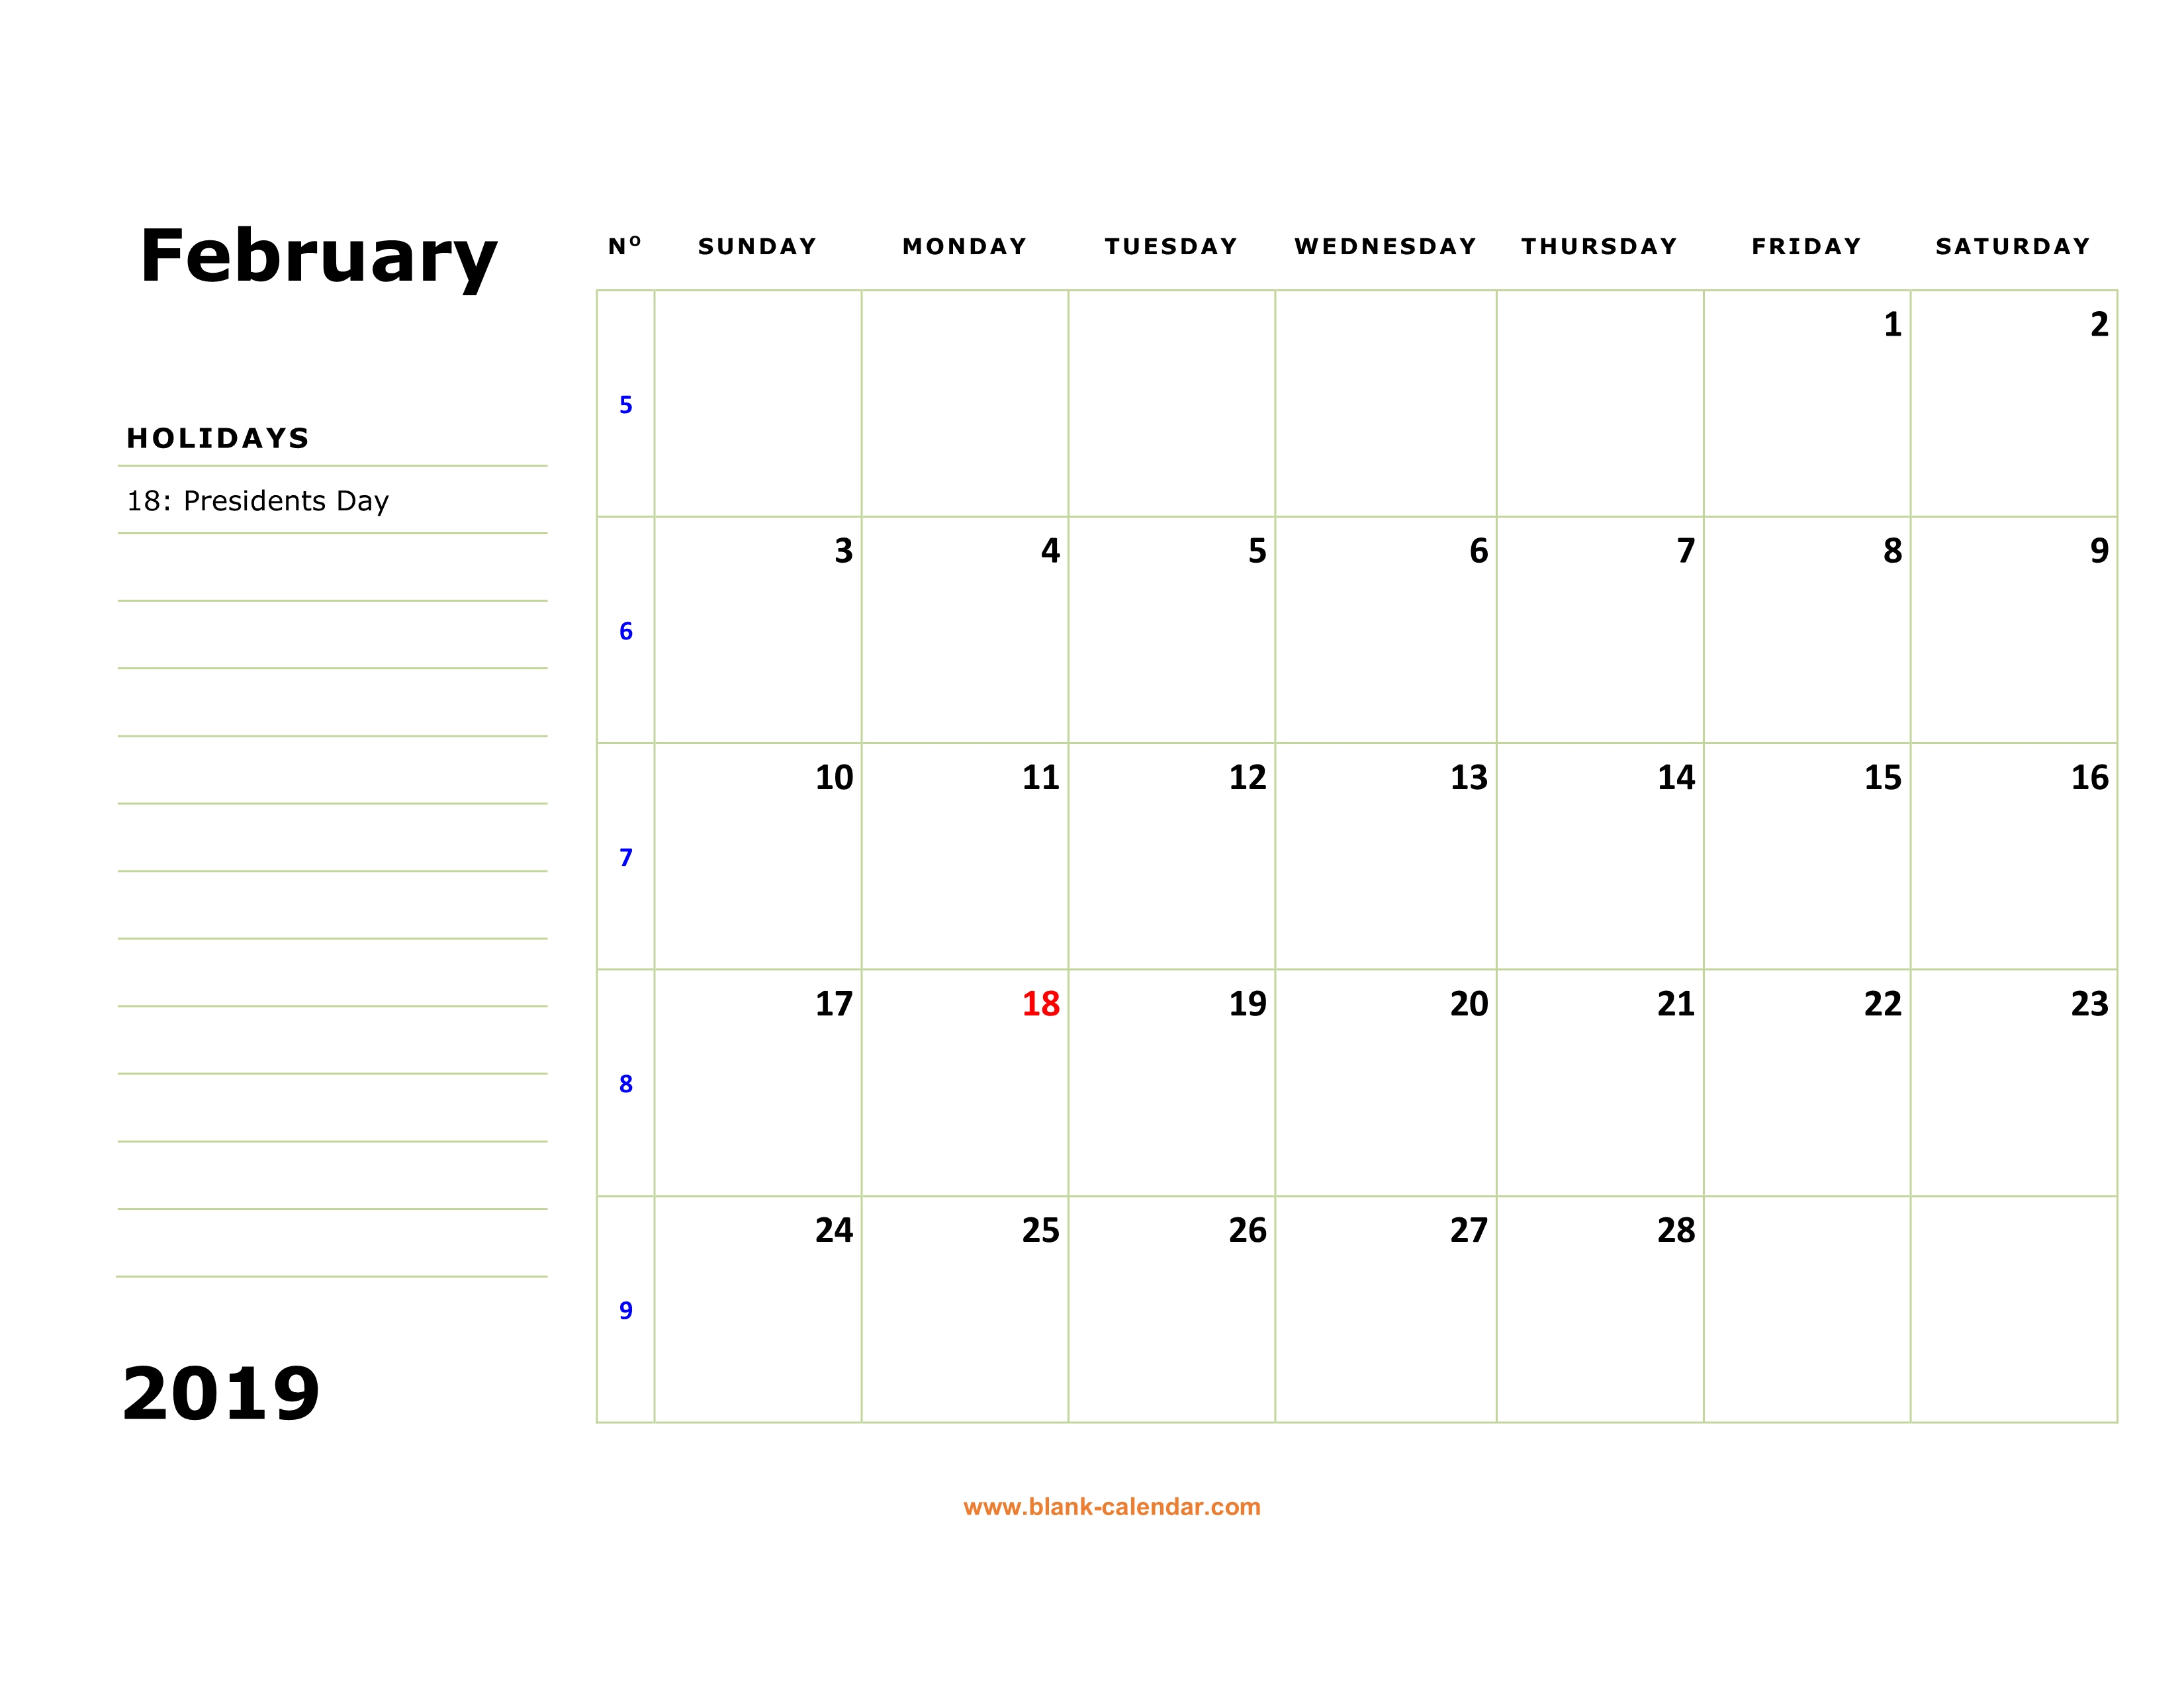 February Calendar 2019 With Notes Free Download Printable February 2019 Calendar, large box